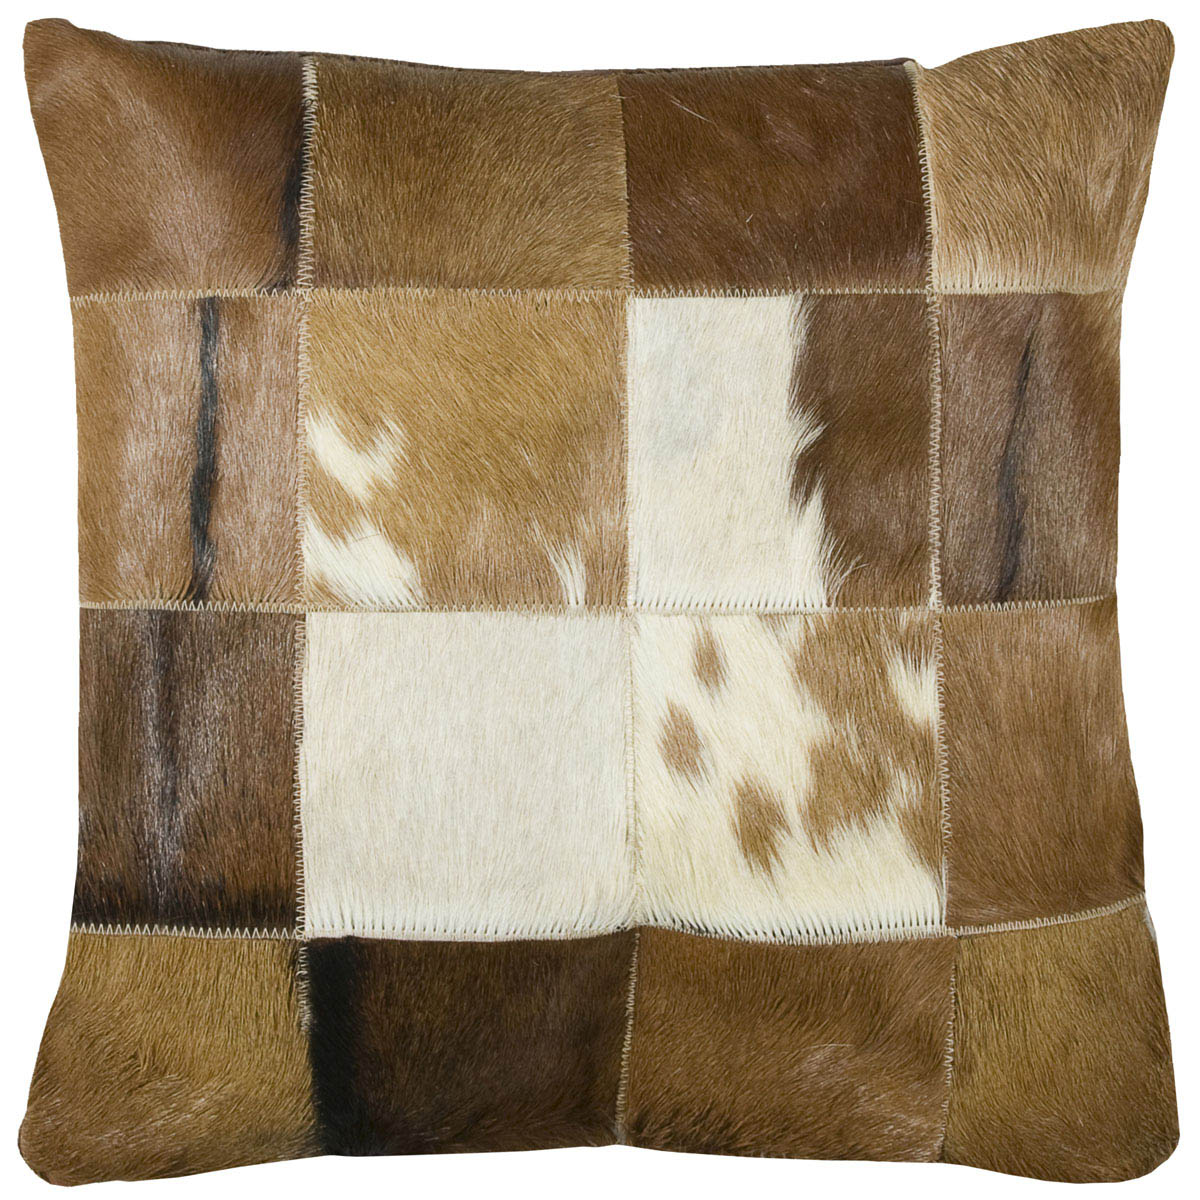 Brown Cowhide Patchwork Pillow